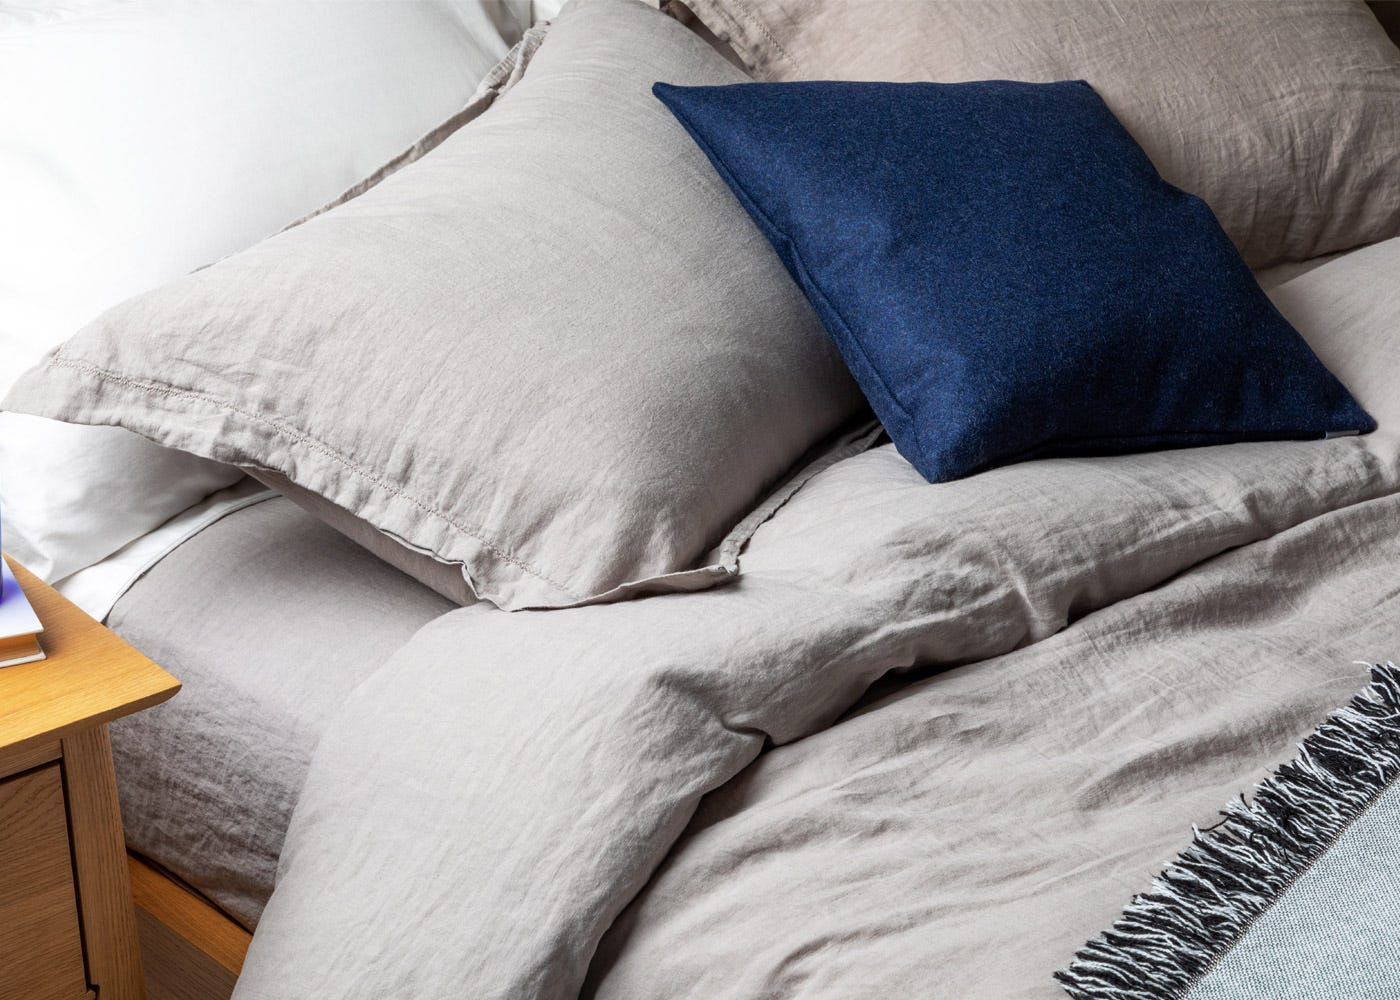 Heal S Washed Linen Bed Linen Natural Heal S